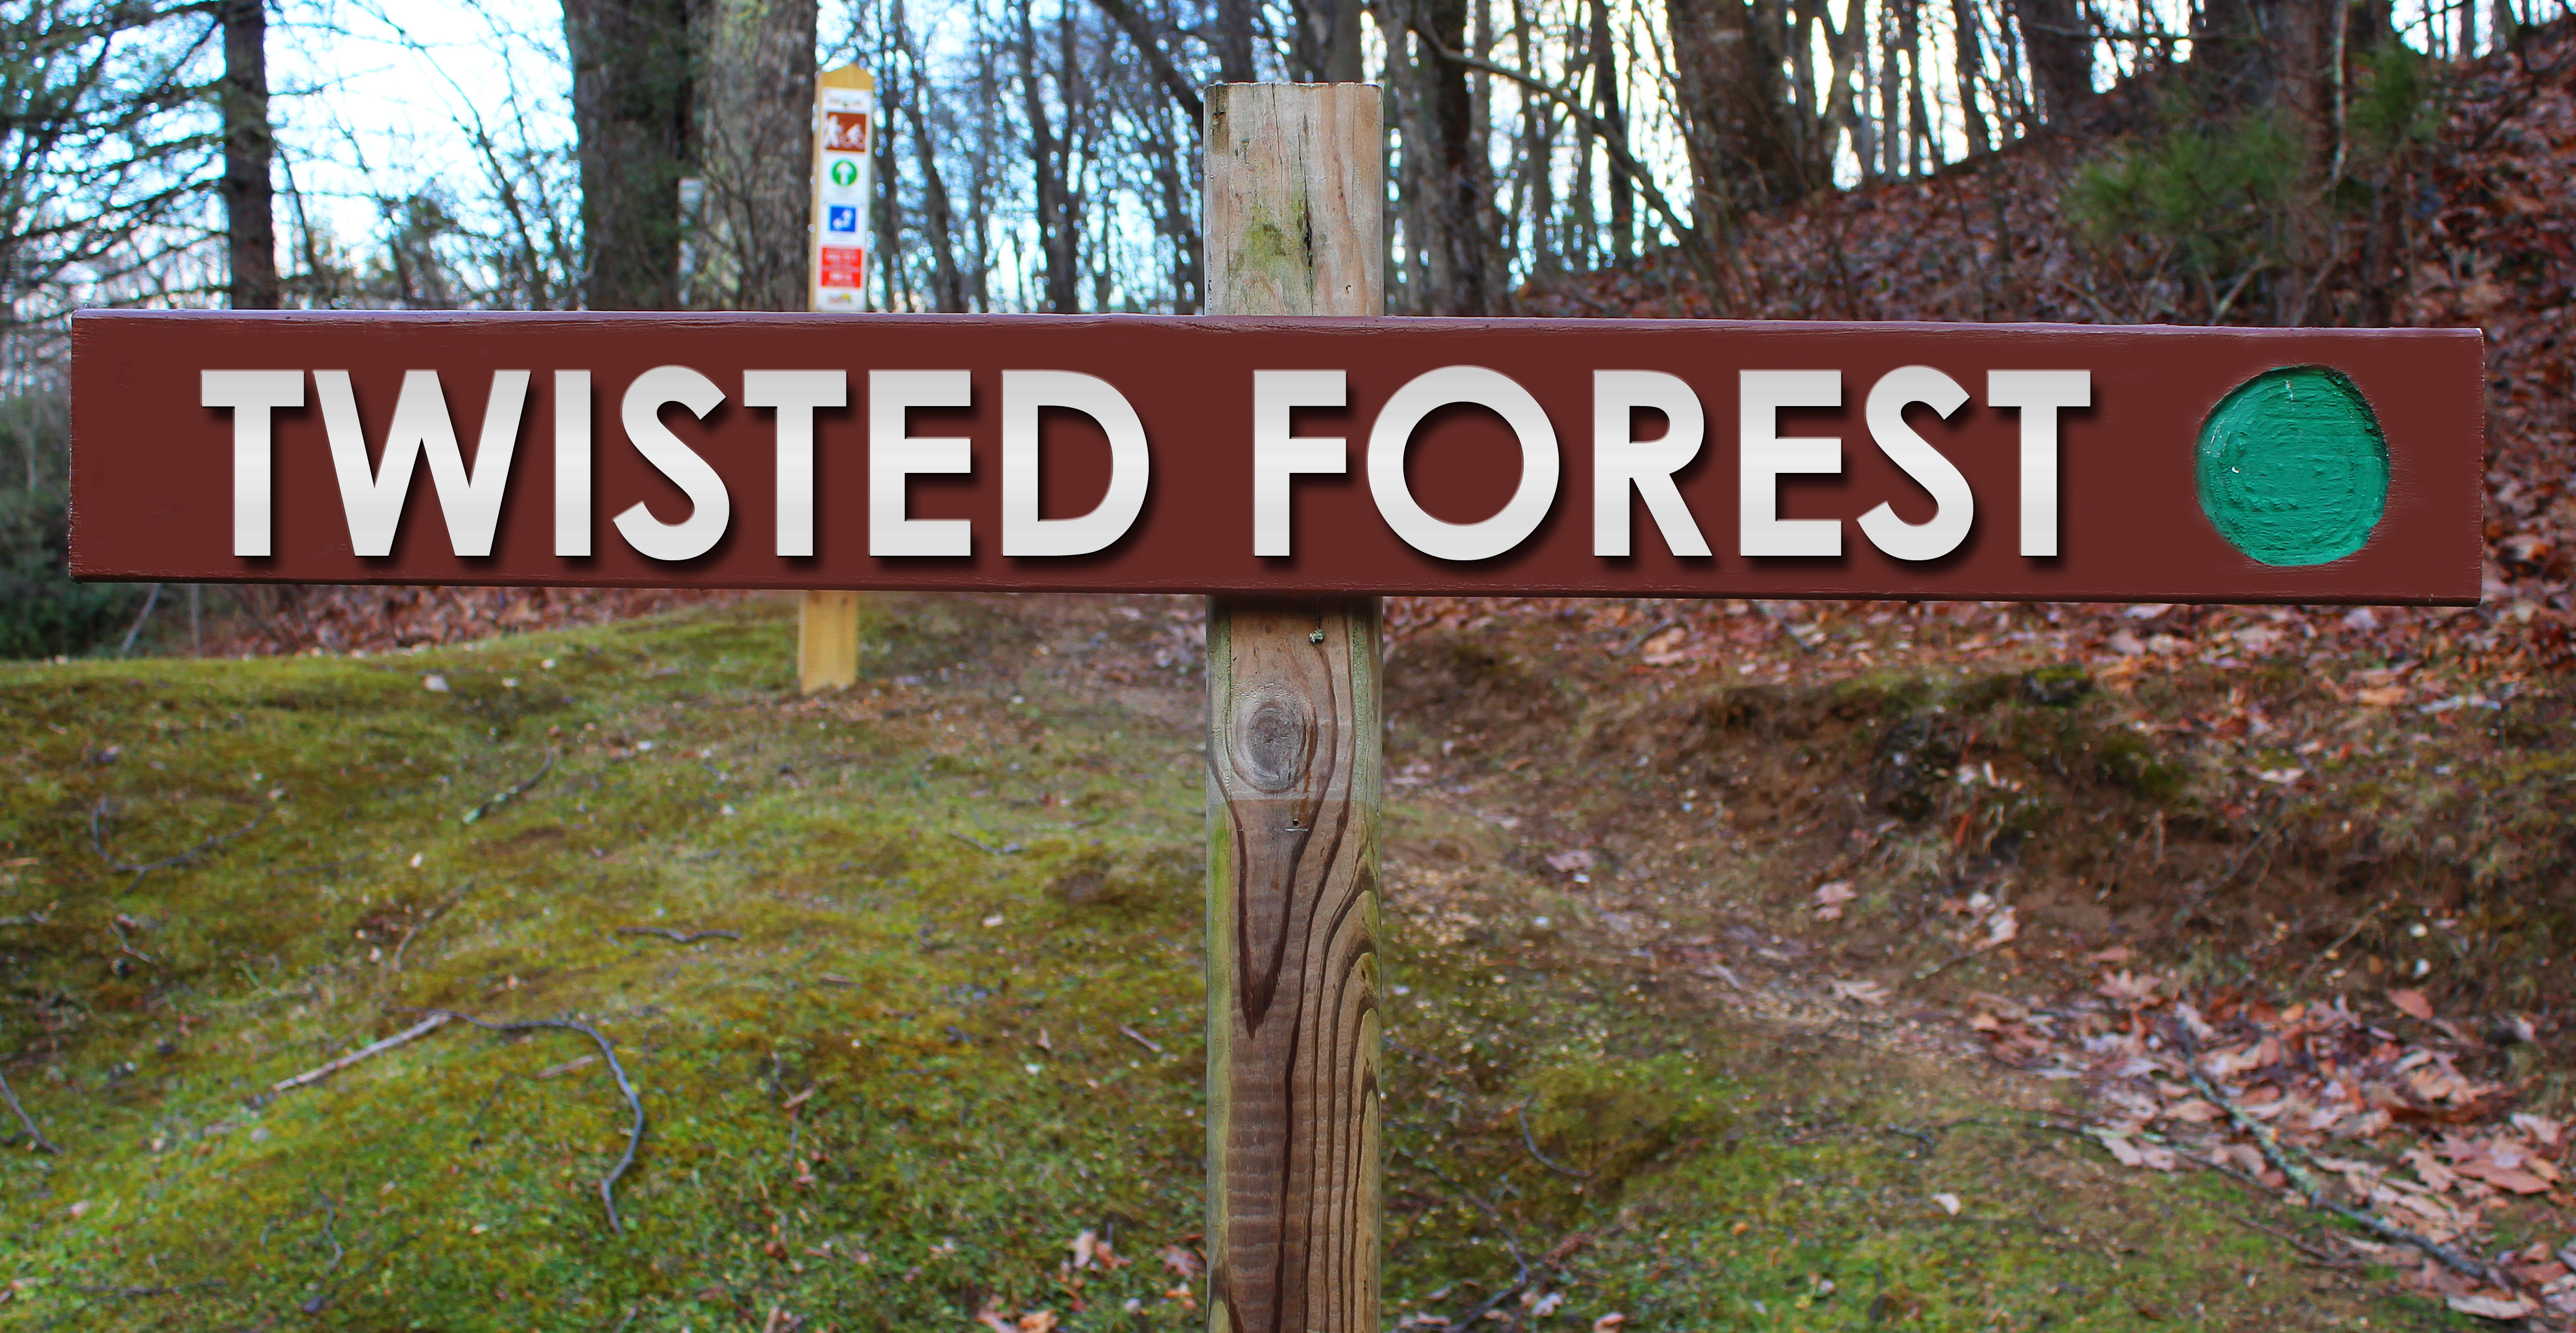 Picture of Twisted Forest trail sign